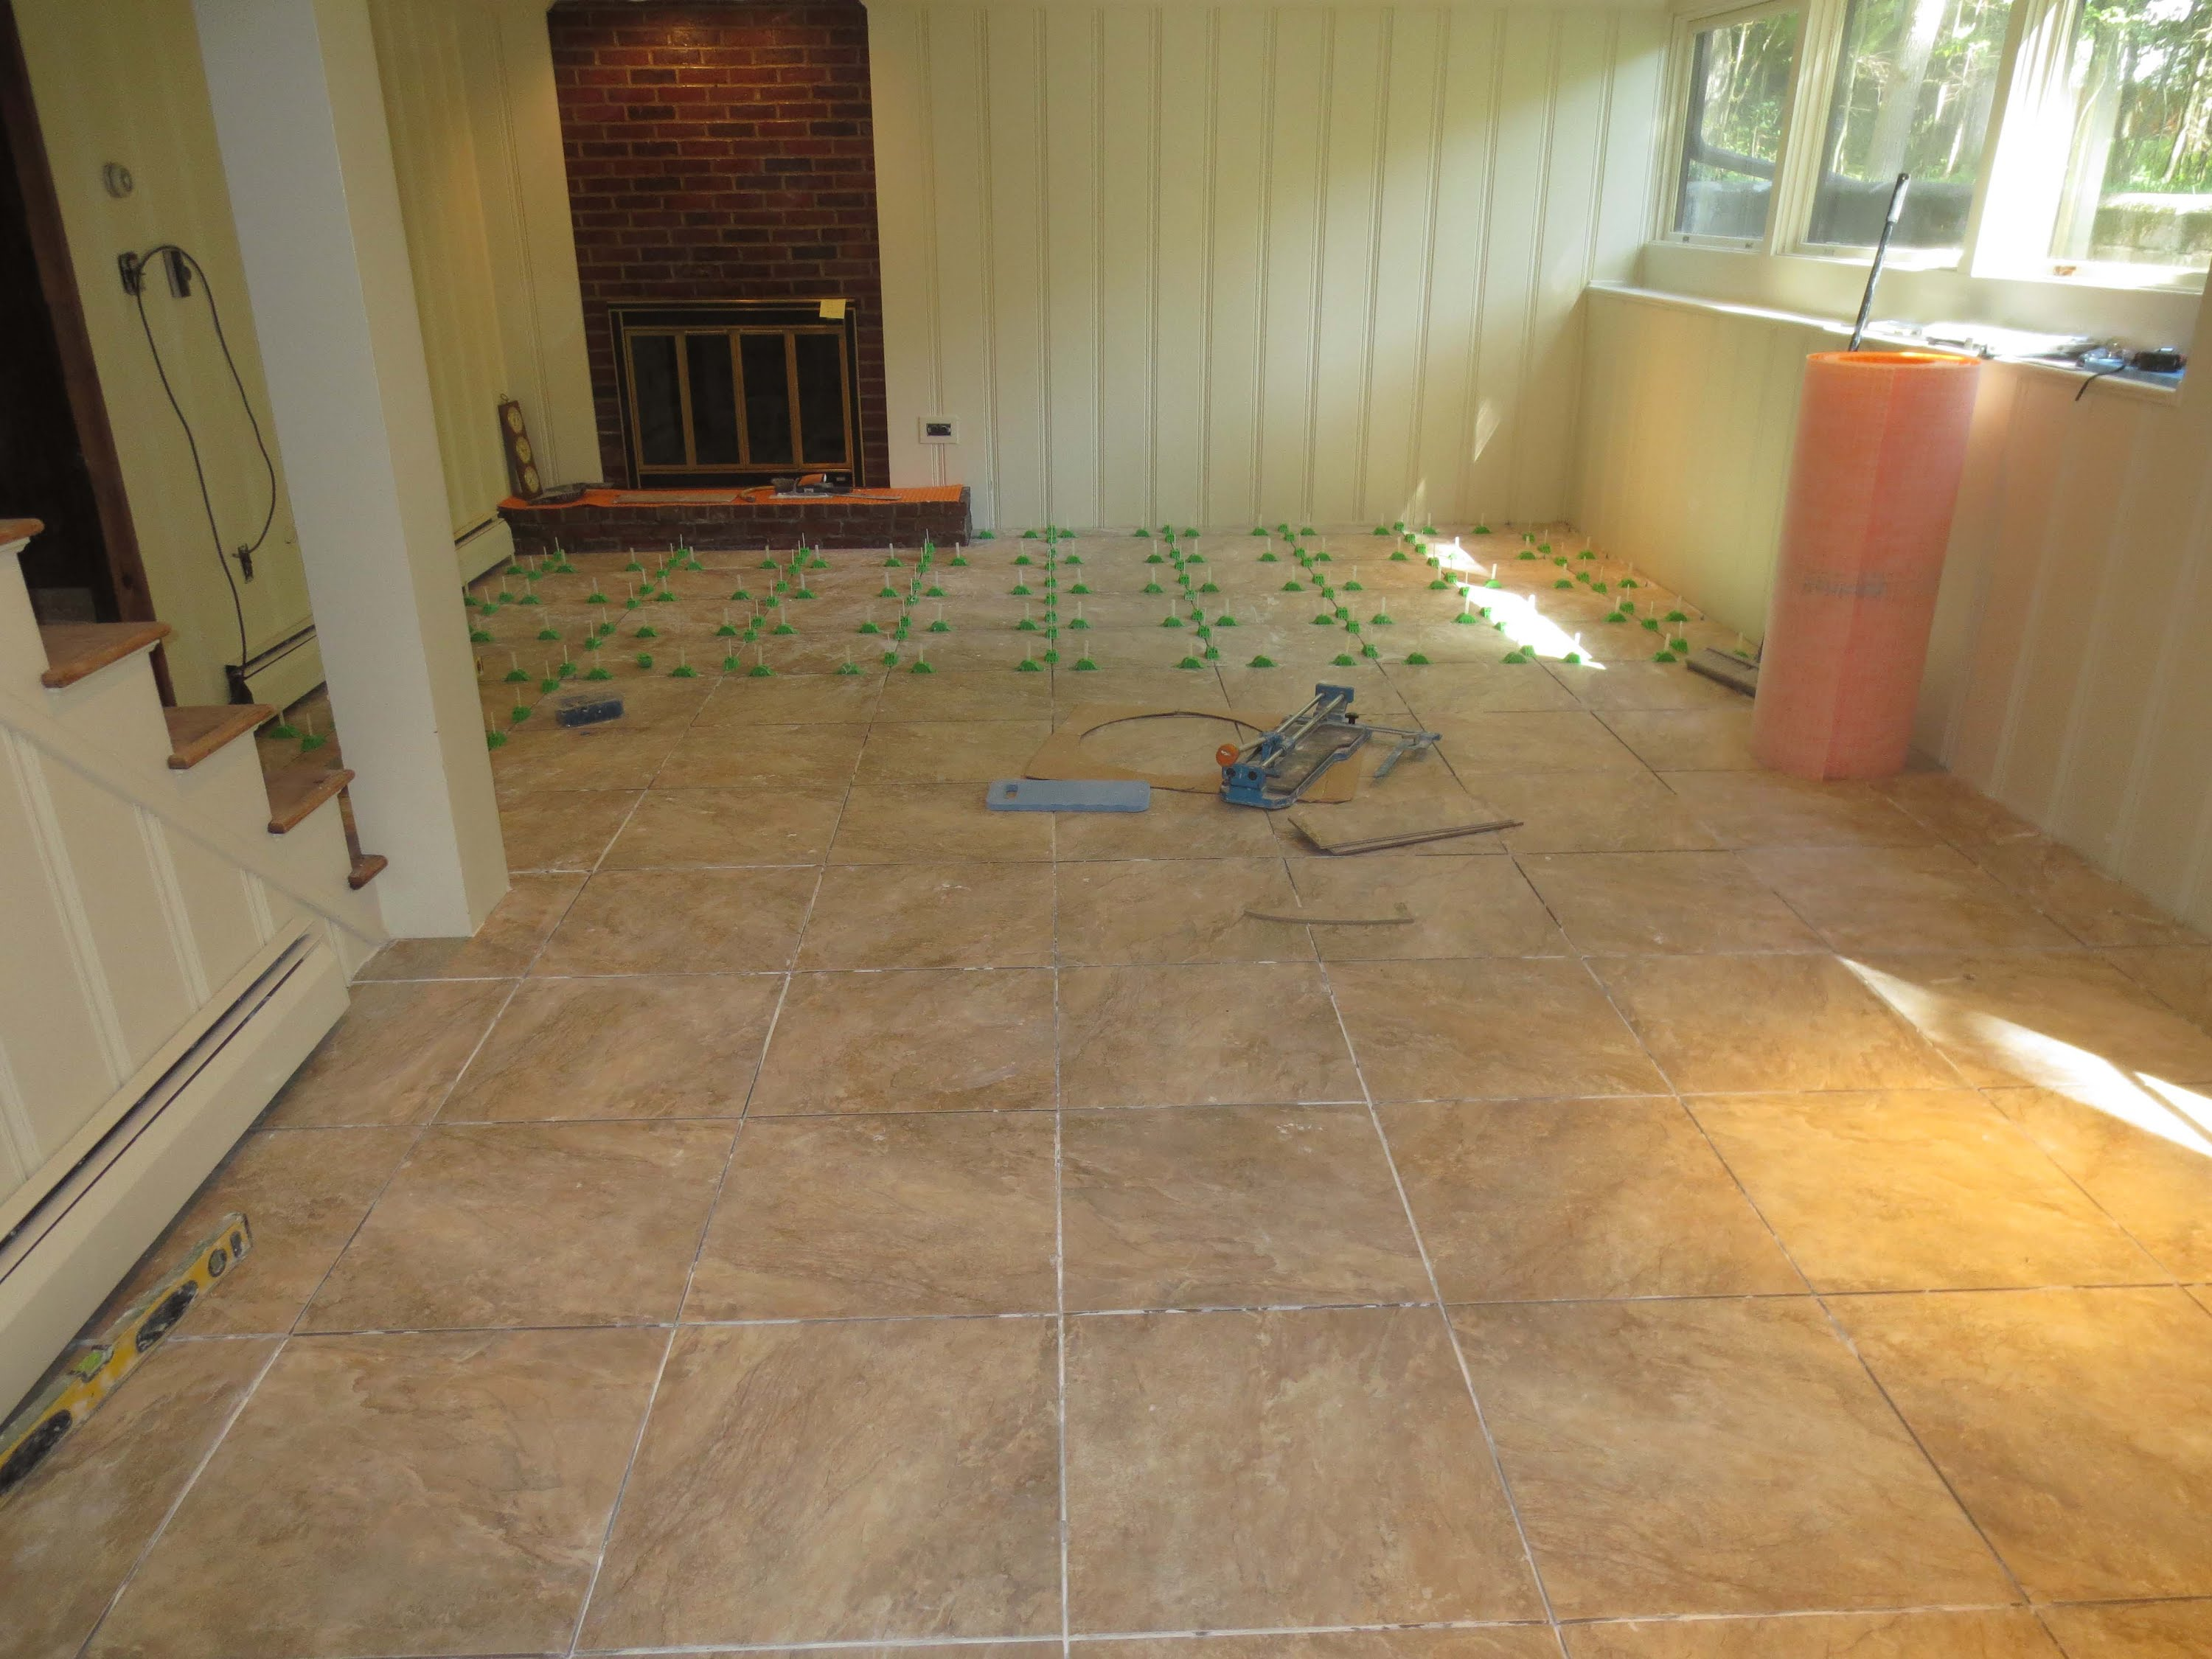 Thermaldry Flooring Best Floor Covering For Basement Raised Floating Interlocking Tiles